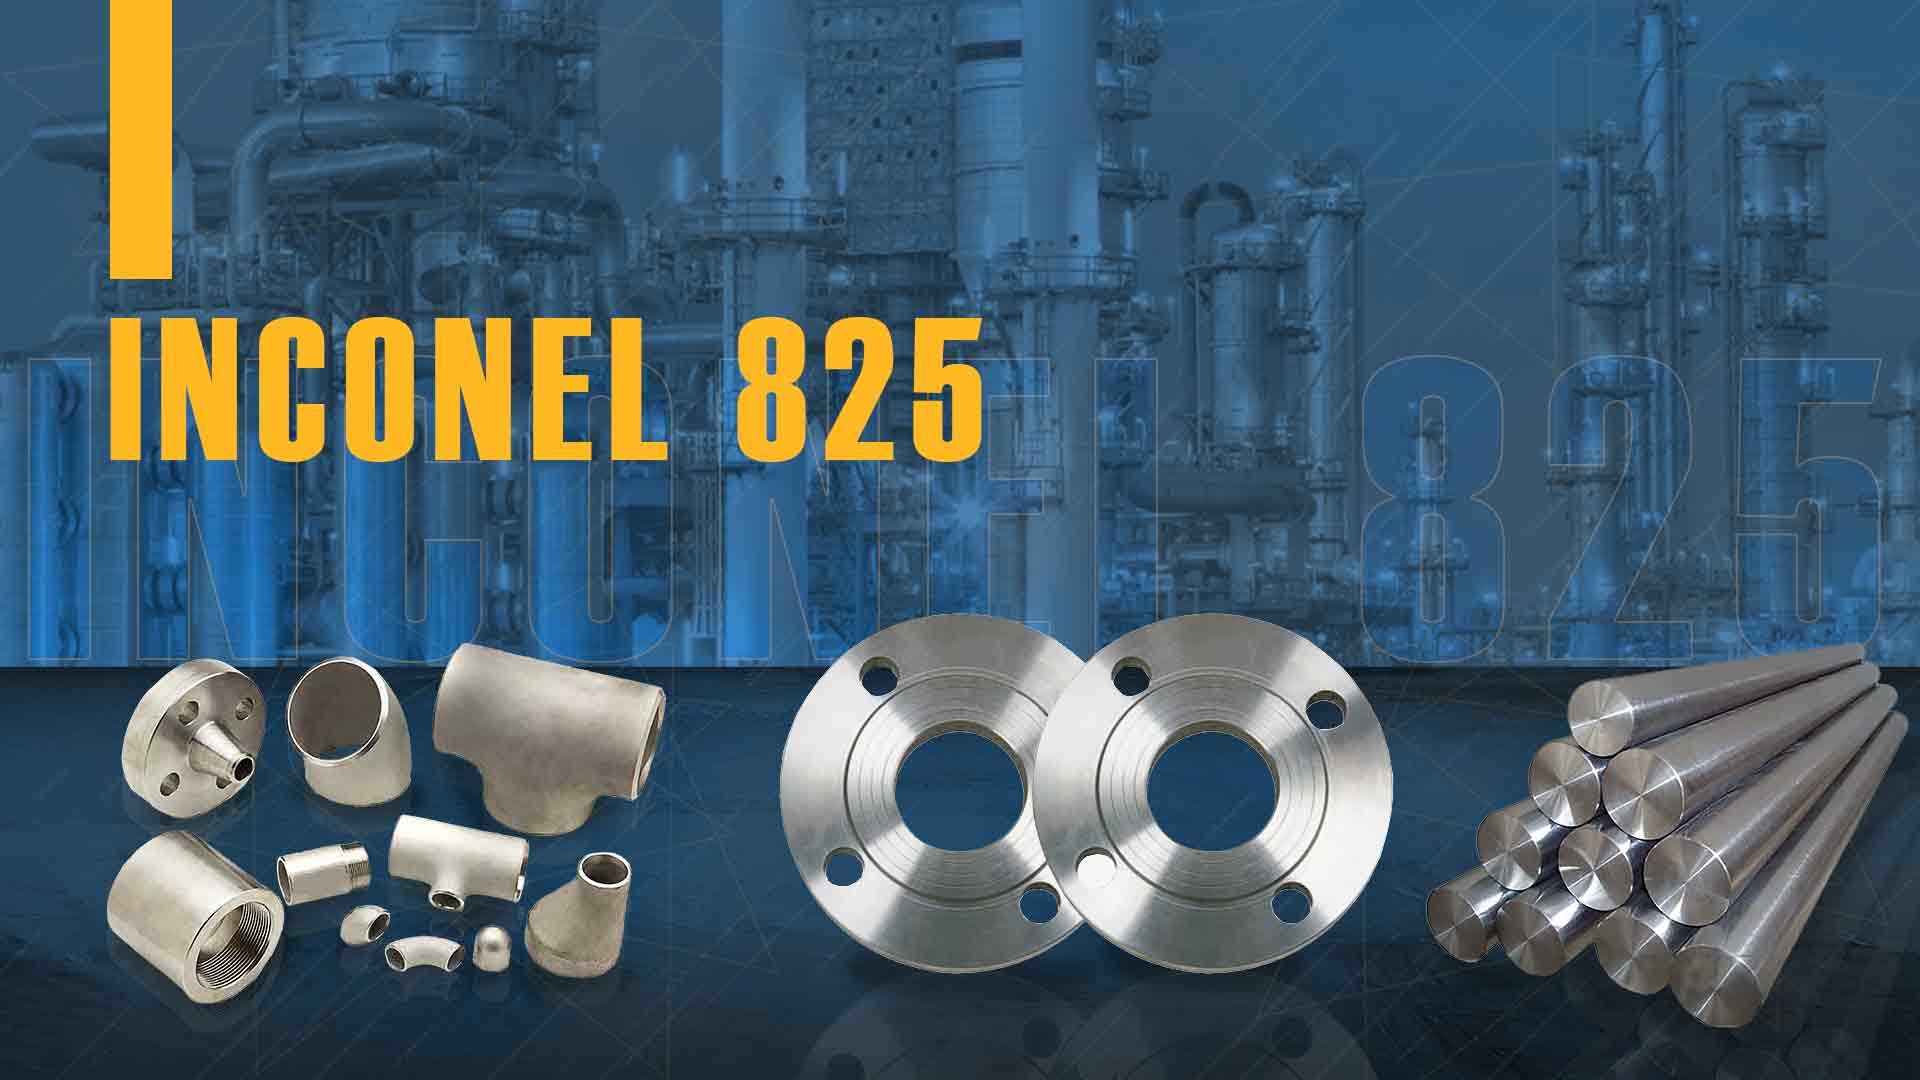 Inconel 825 In Bangladesh